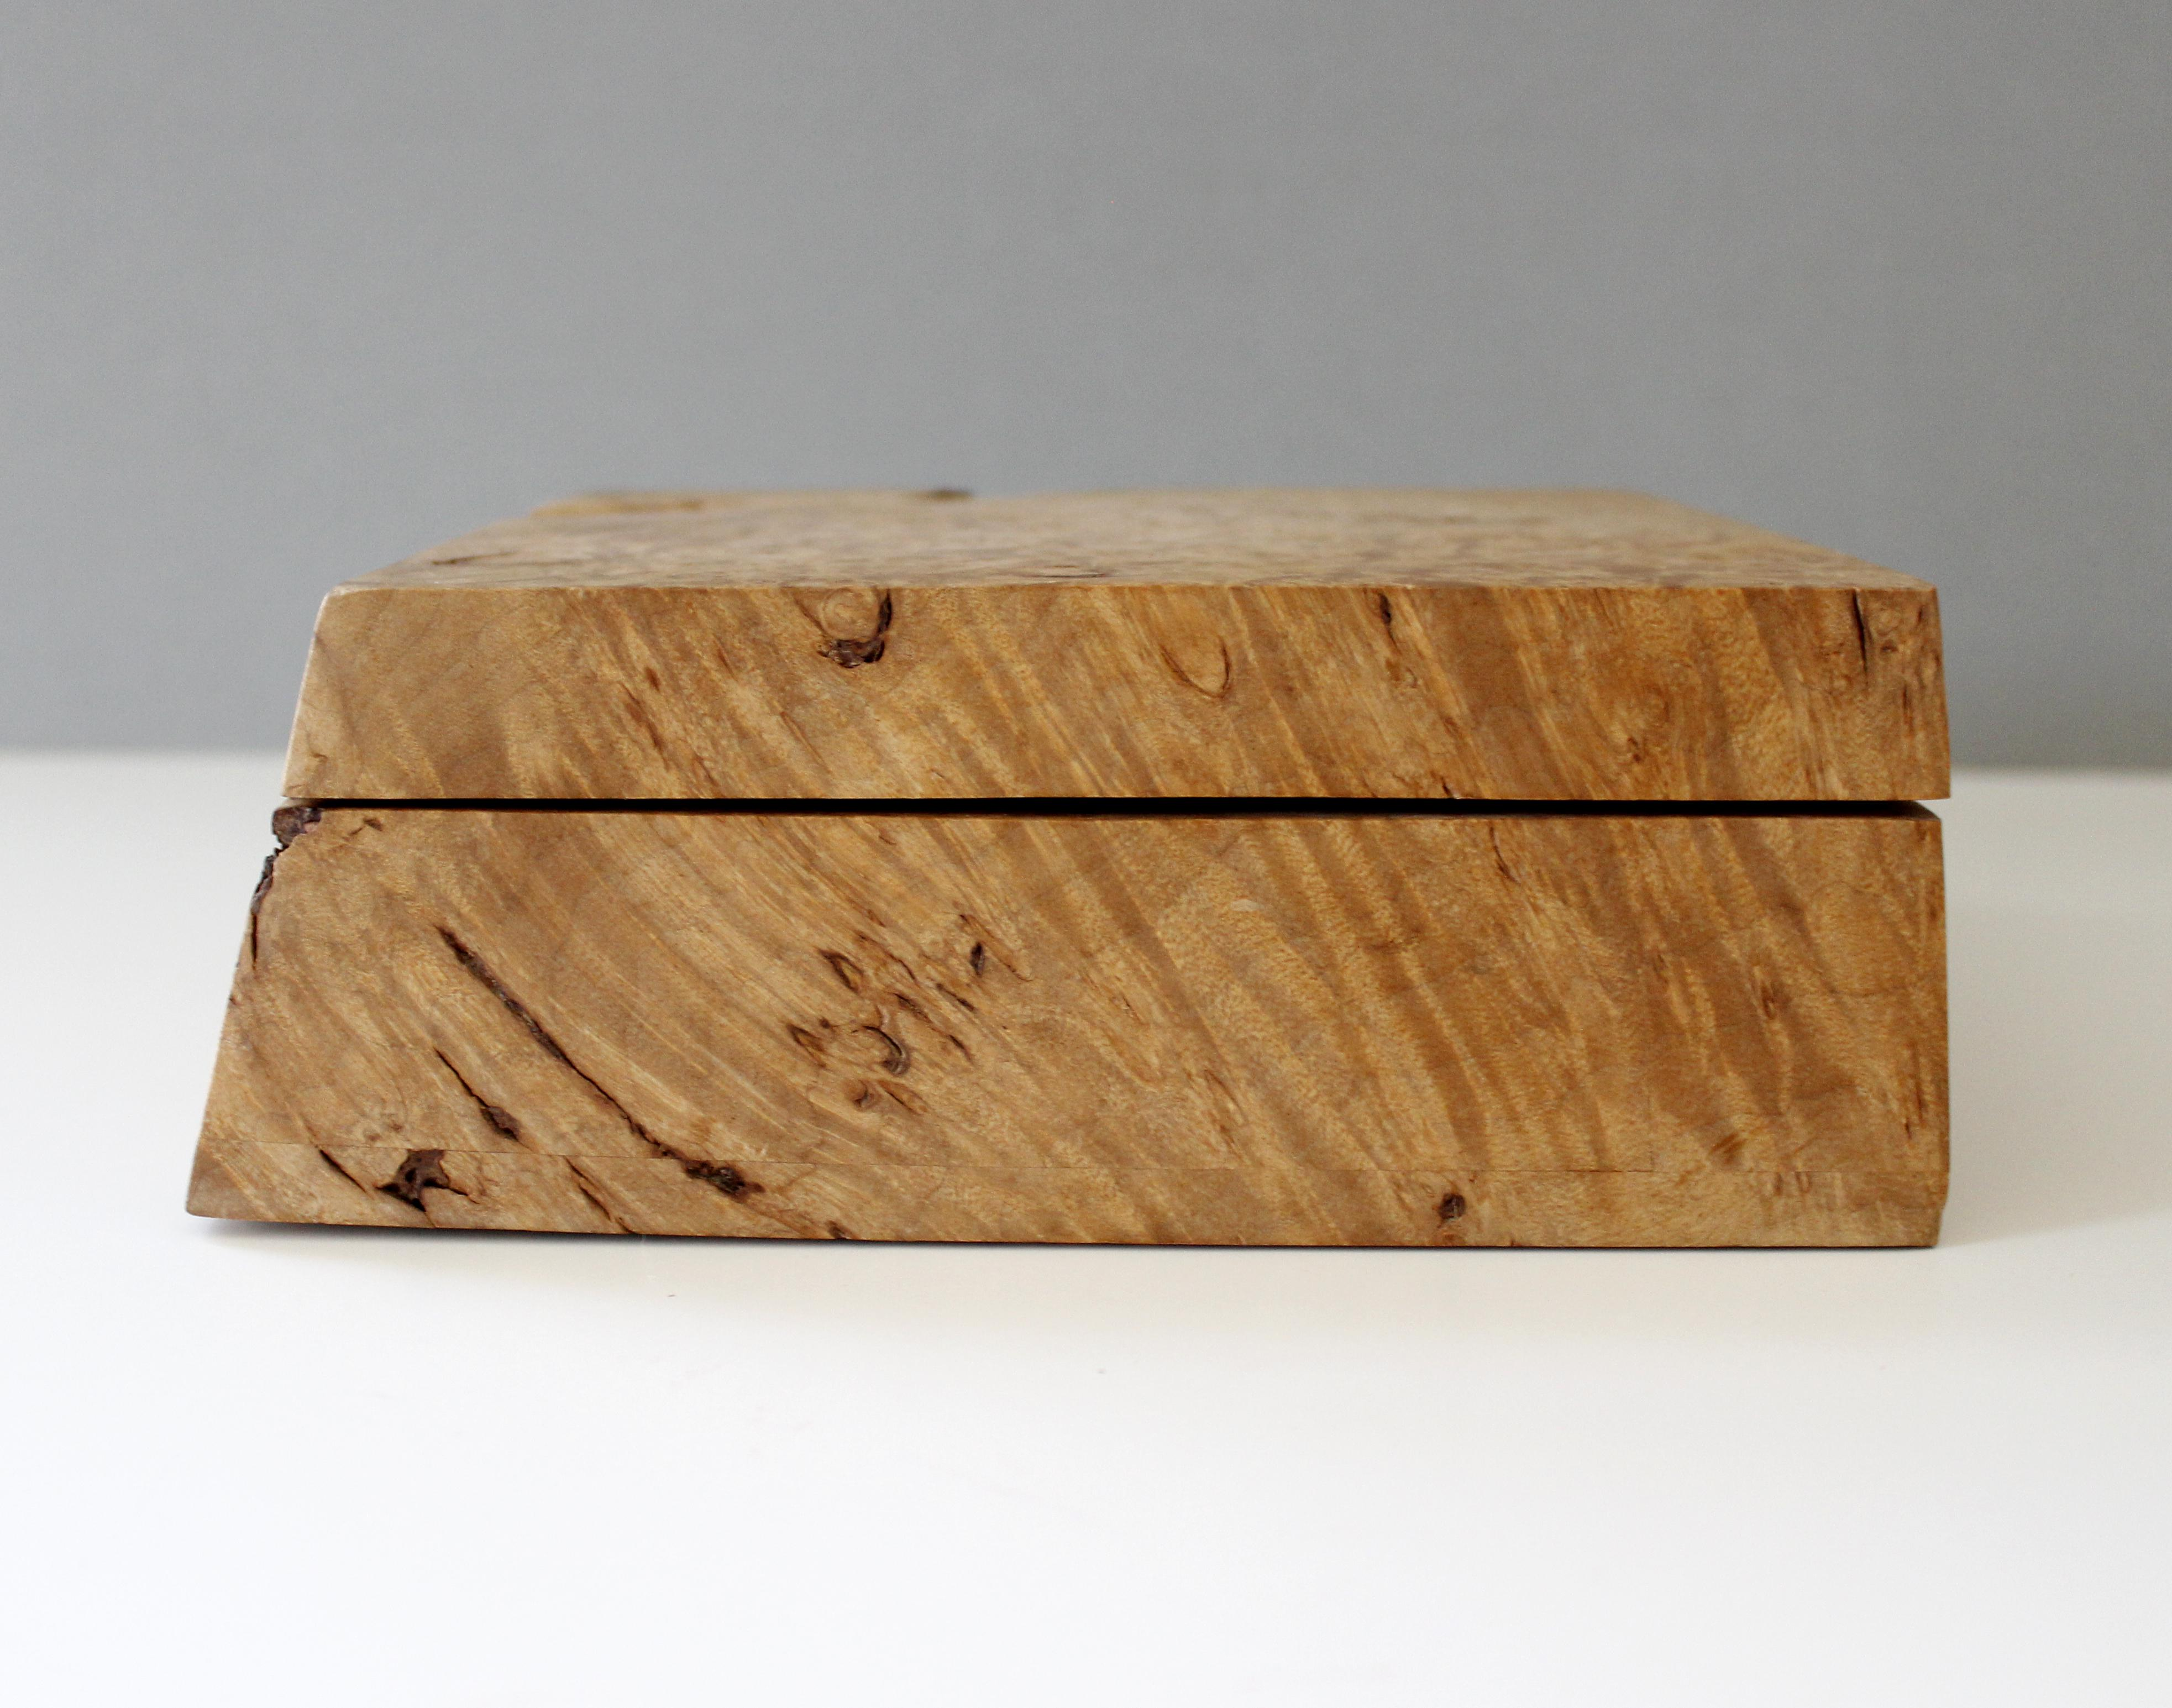 Vintage Michael Elkan Burl Wood Jewelry Box Handmade Chairish